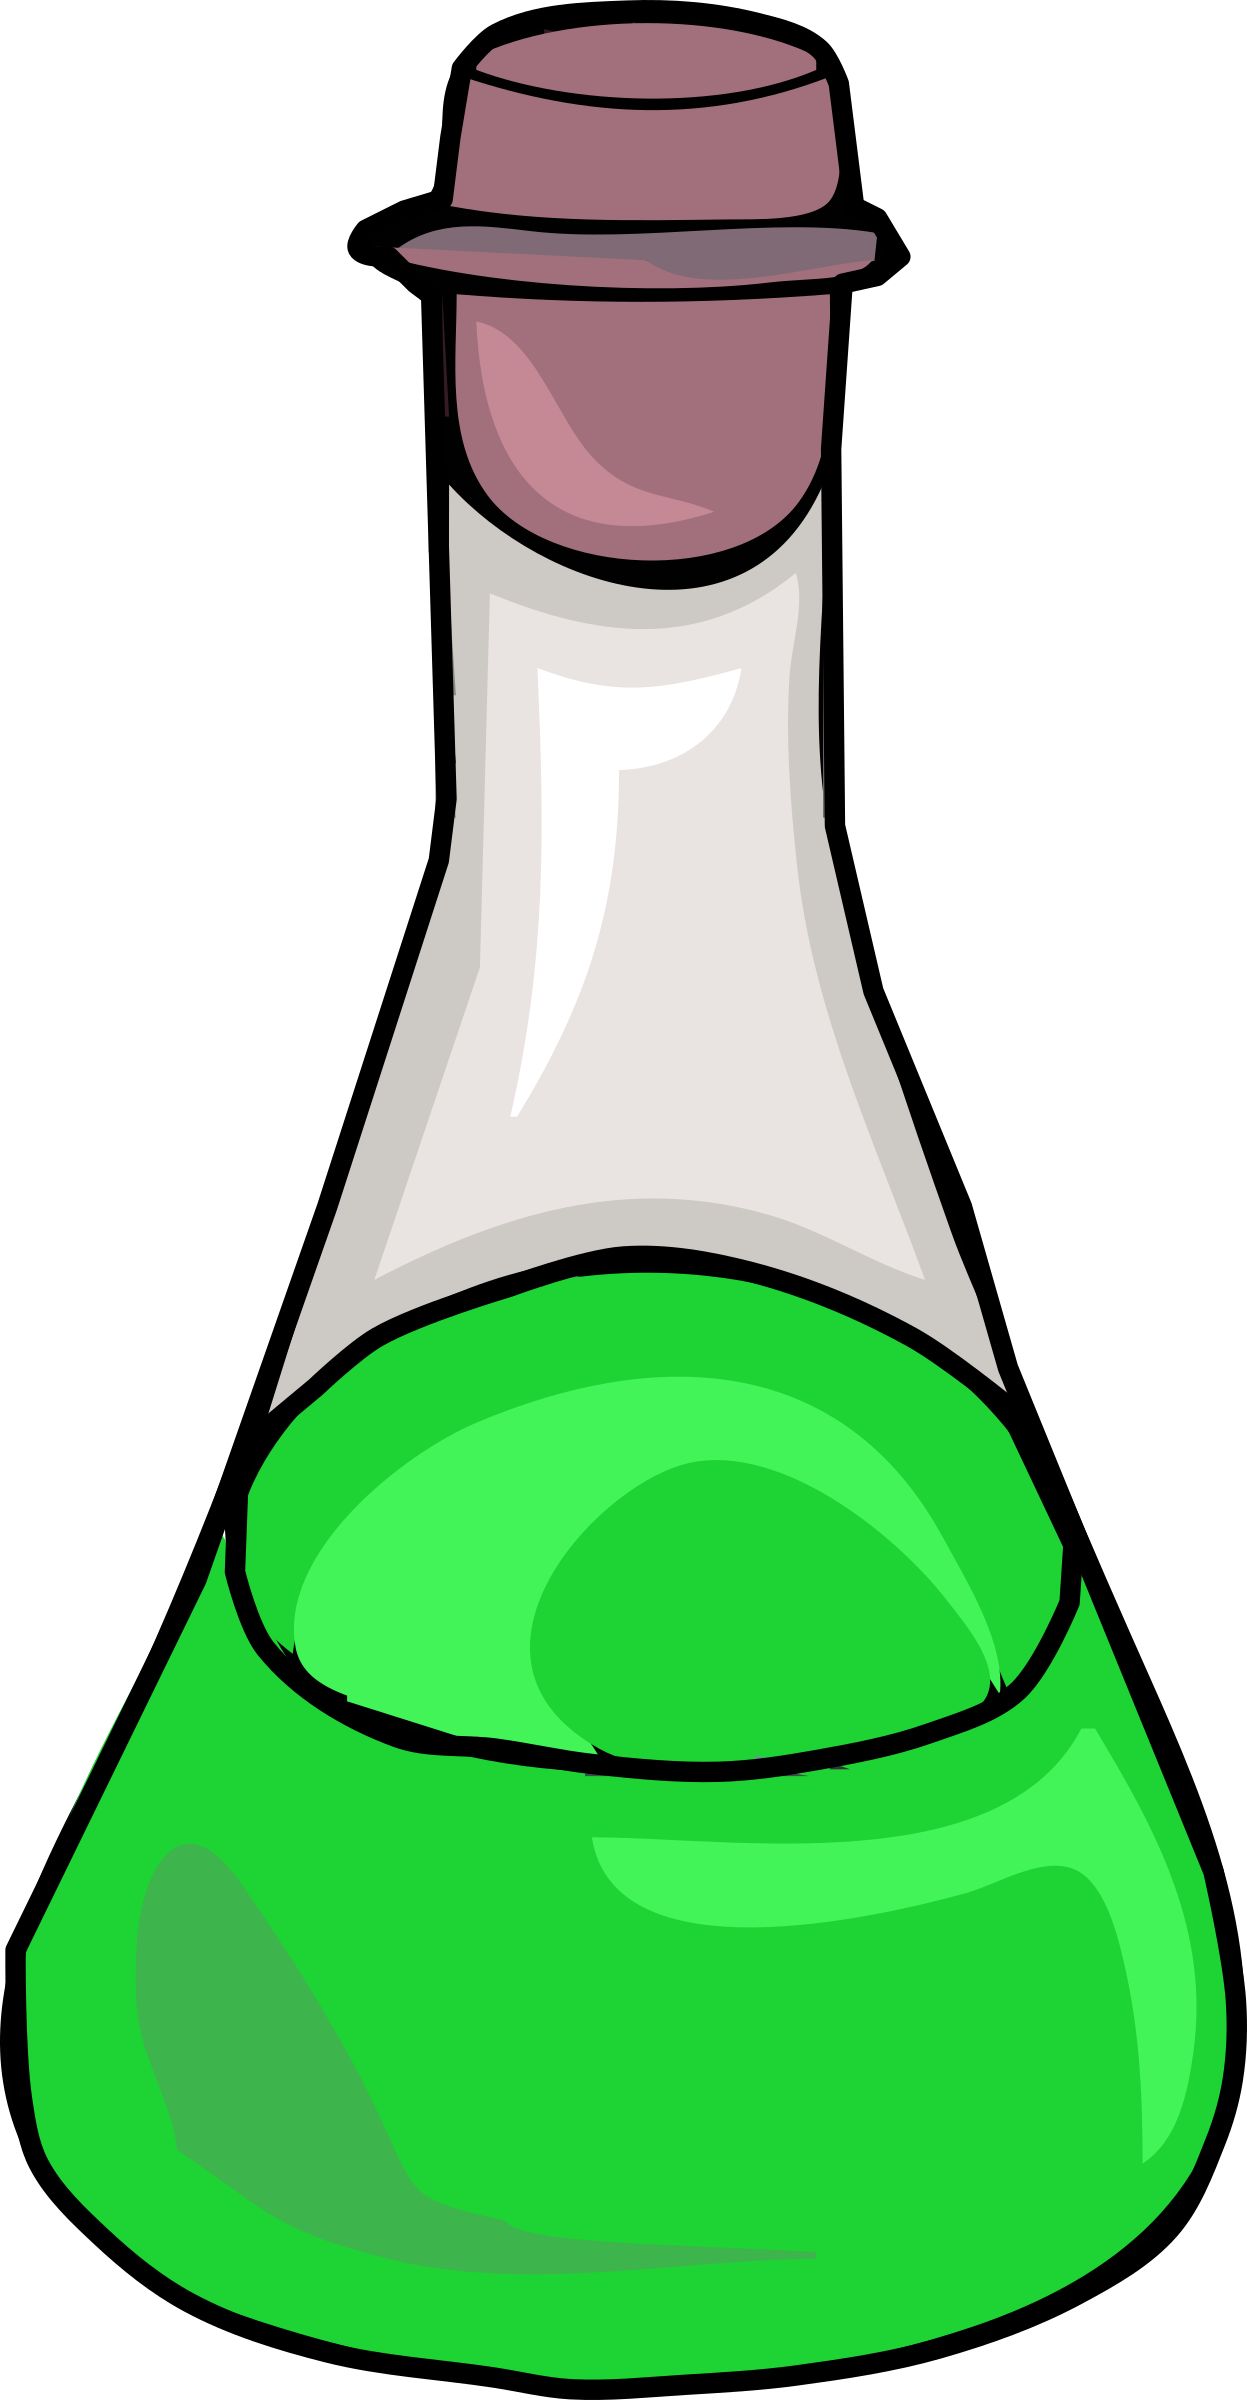 Green Science Bottle by j4p4n